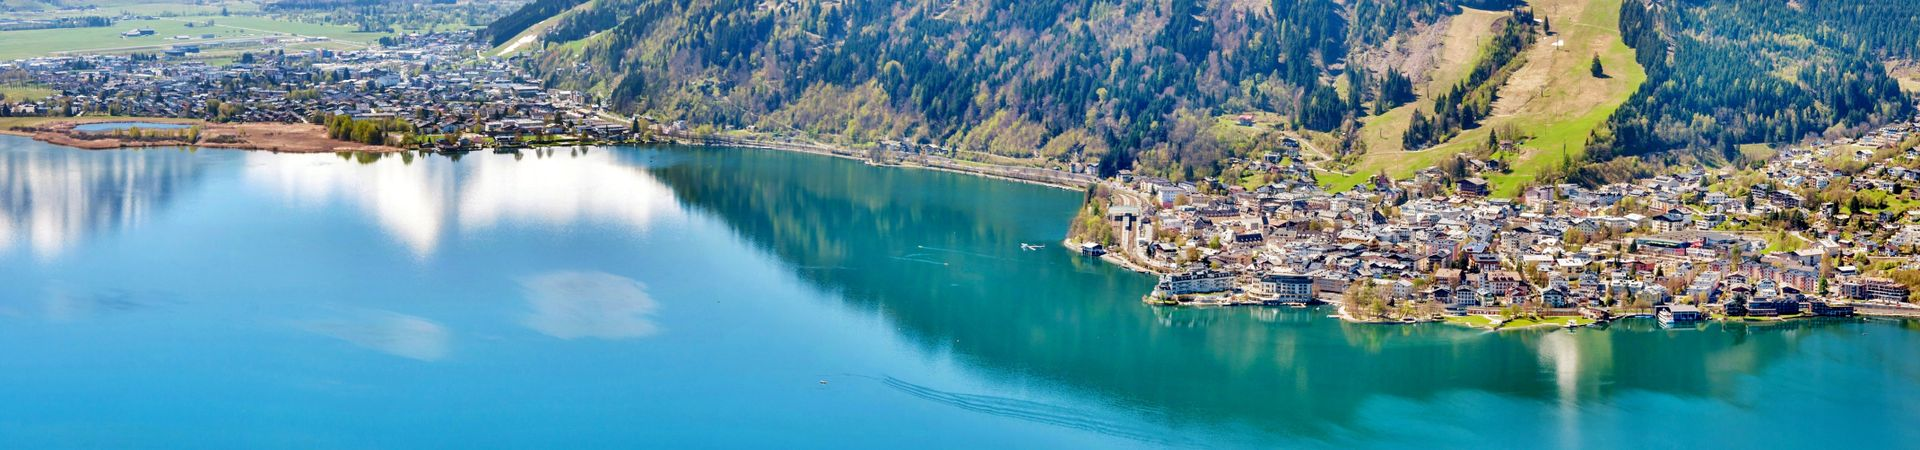 Familienhotels in Zell am See